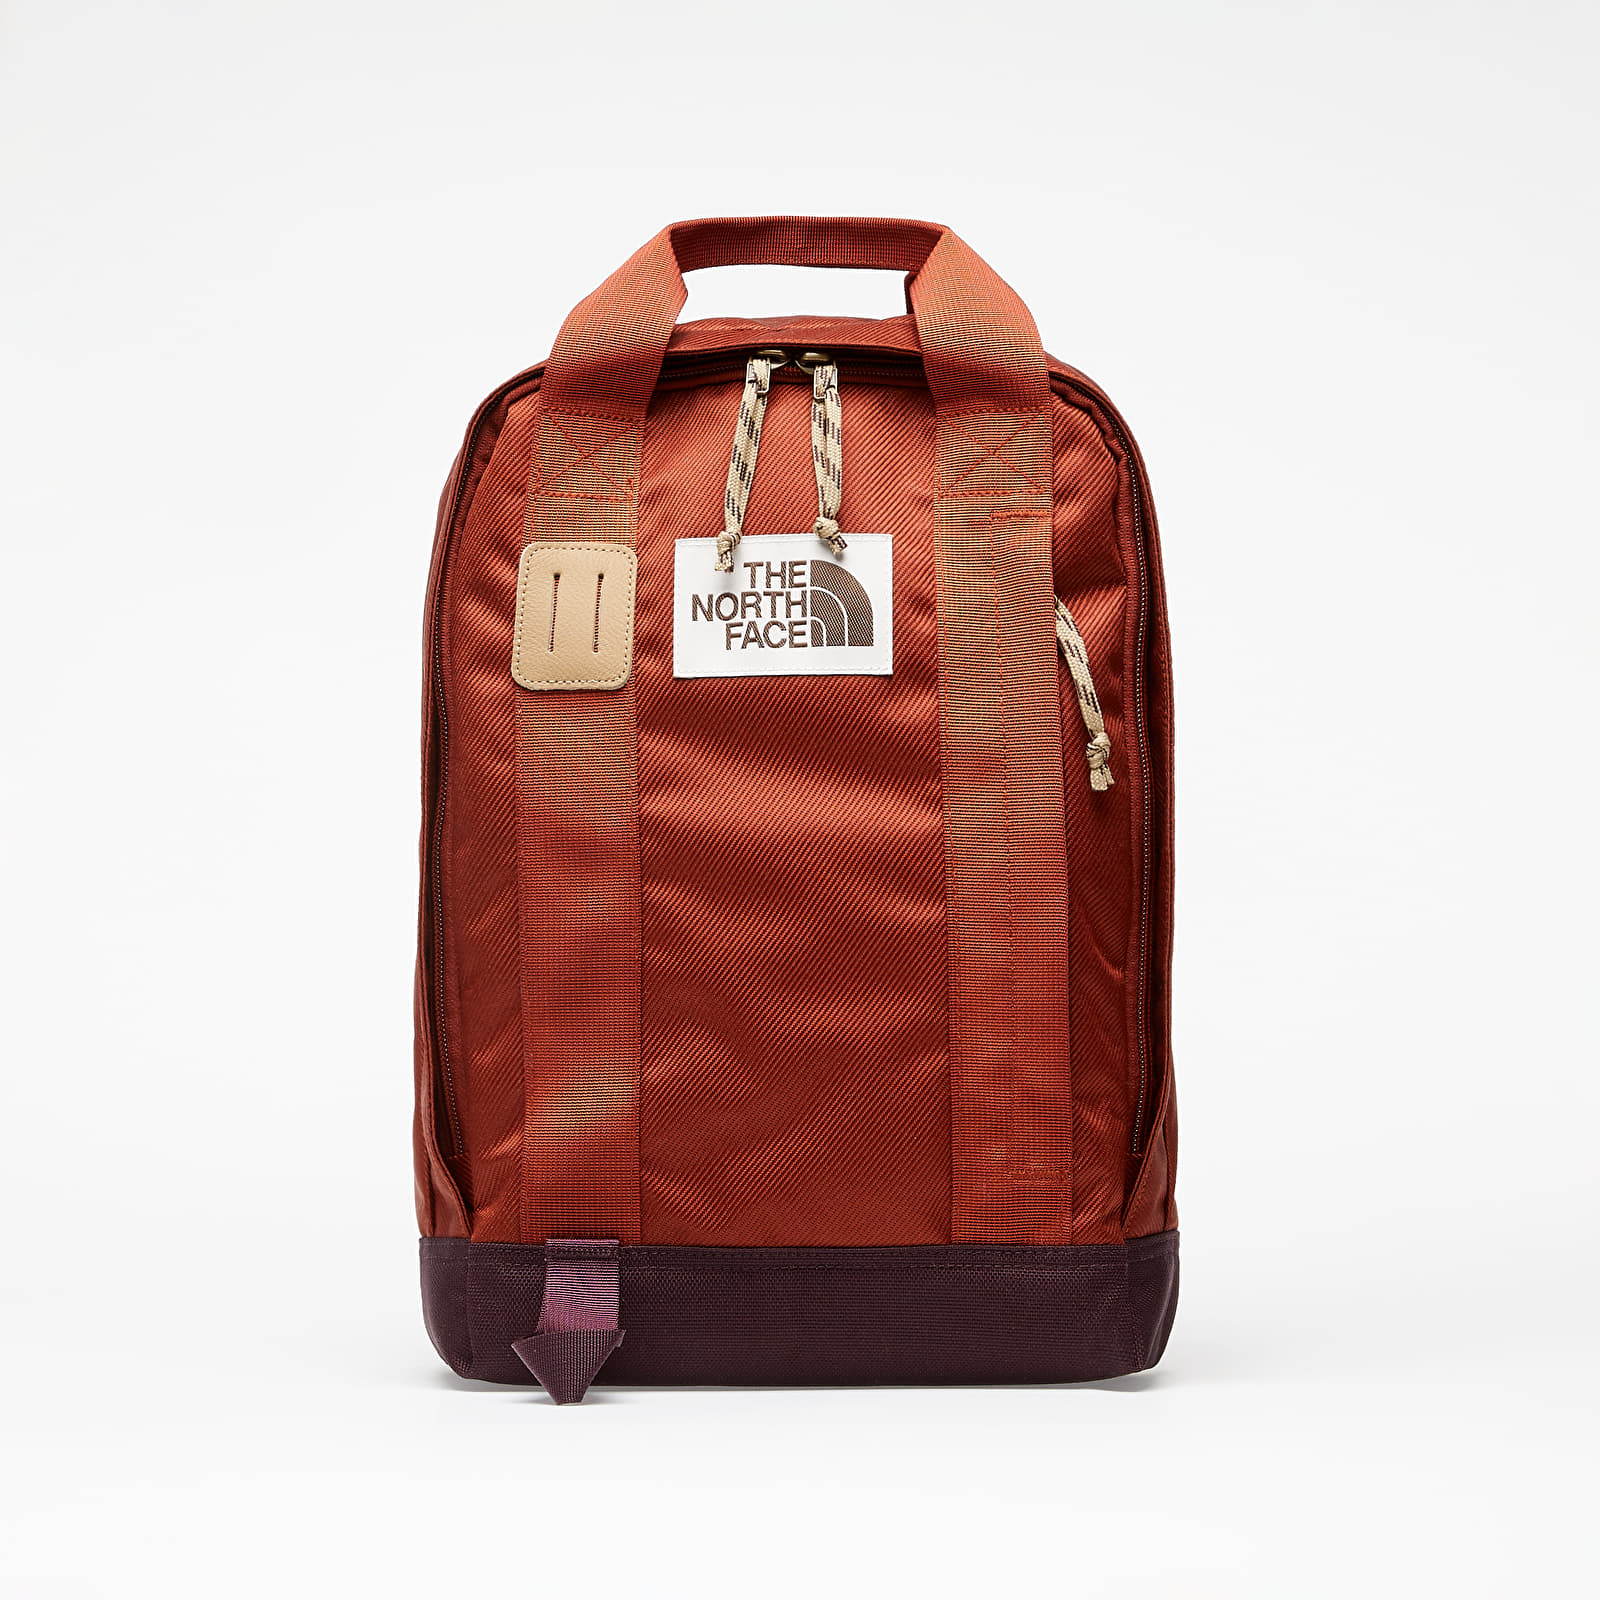 Mochilas The North Face Tote Pack Brandy Brown/ Root Brown